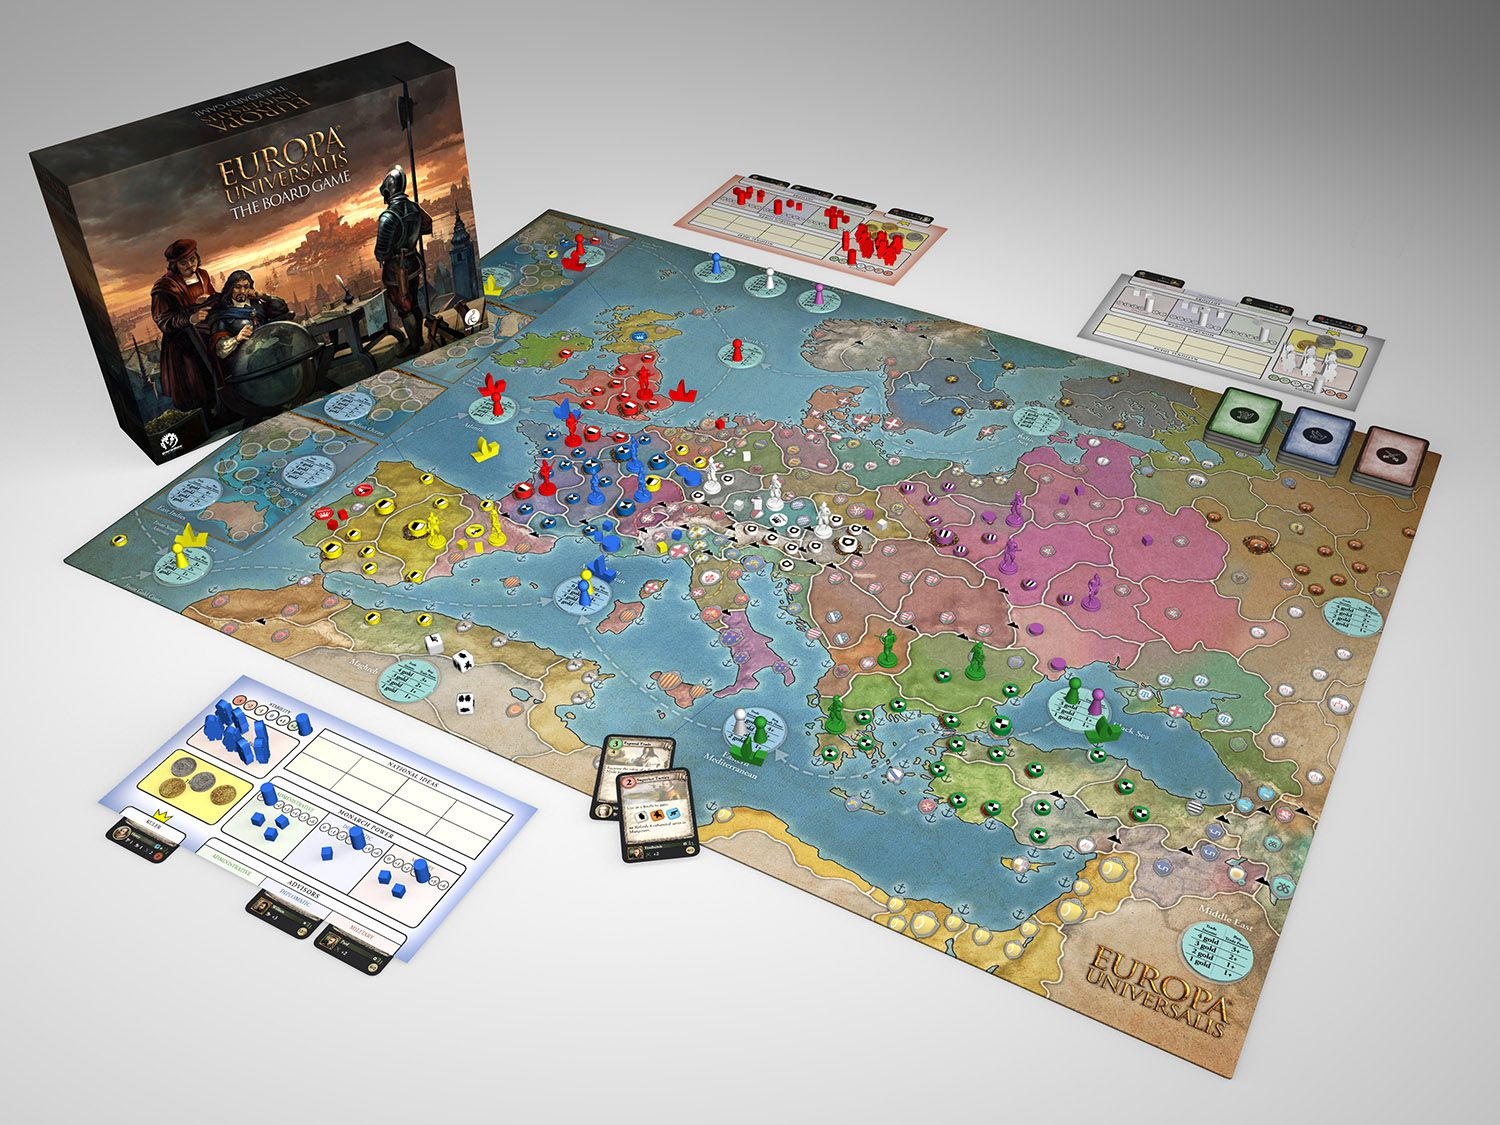 Europa Universalis: The Board Game